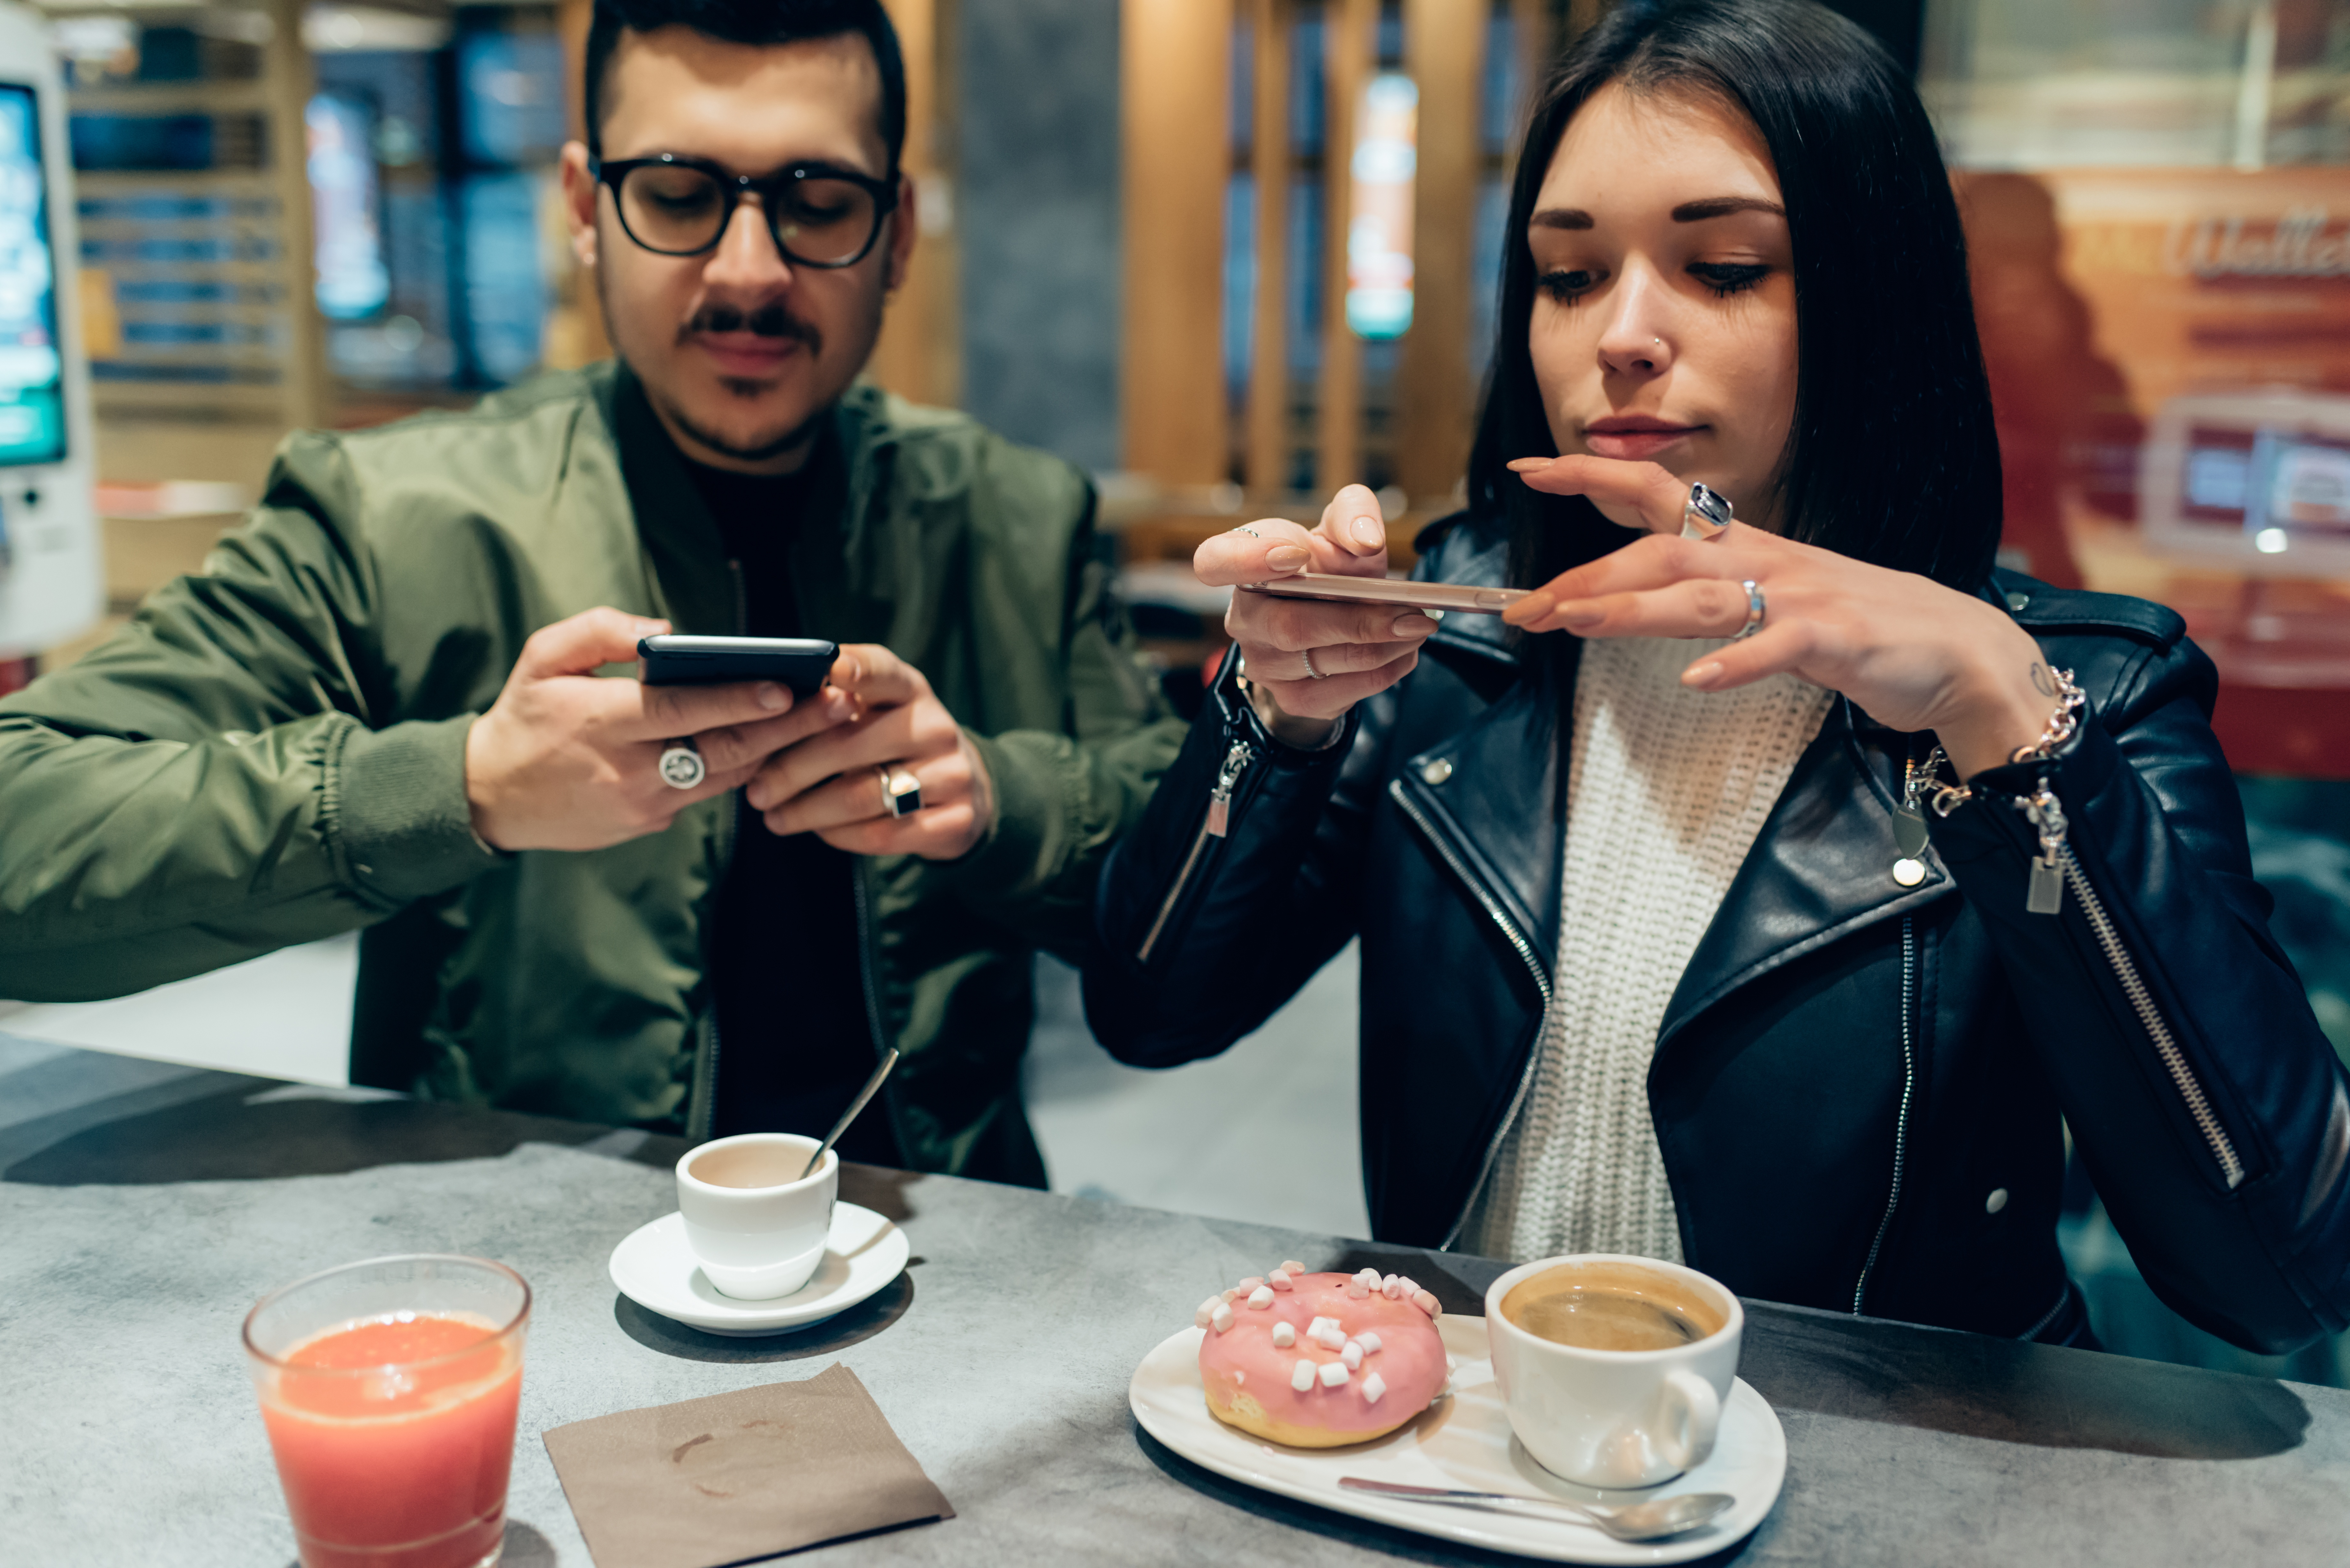 UK Influencers: Younger Have Social Reach, but Wise Heads Carry Weight in Some Categories